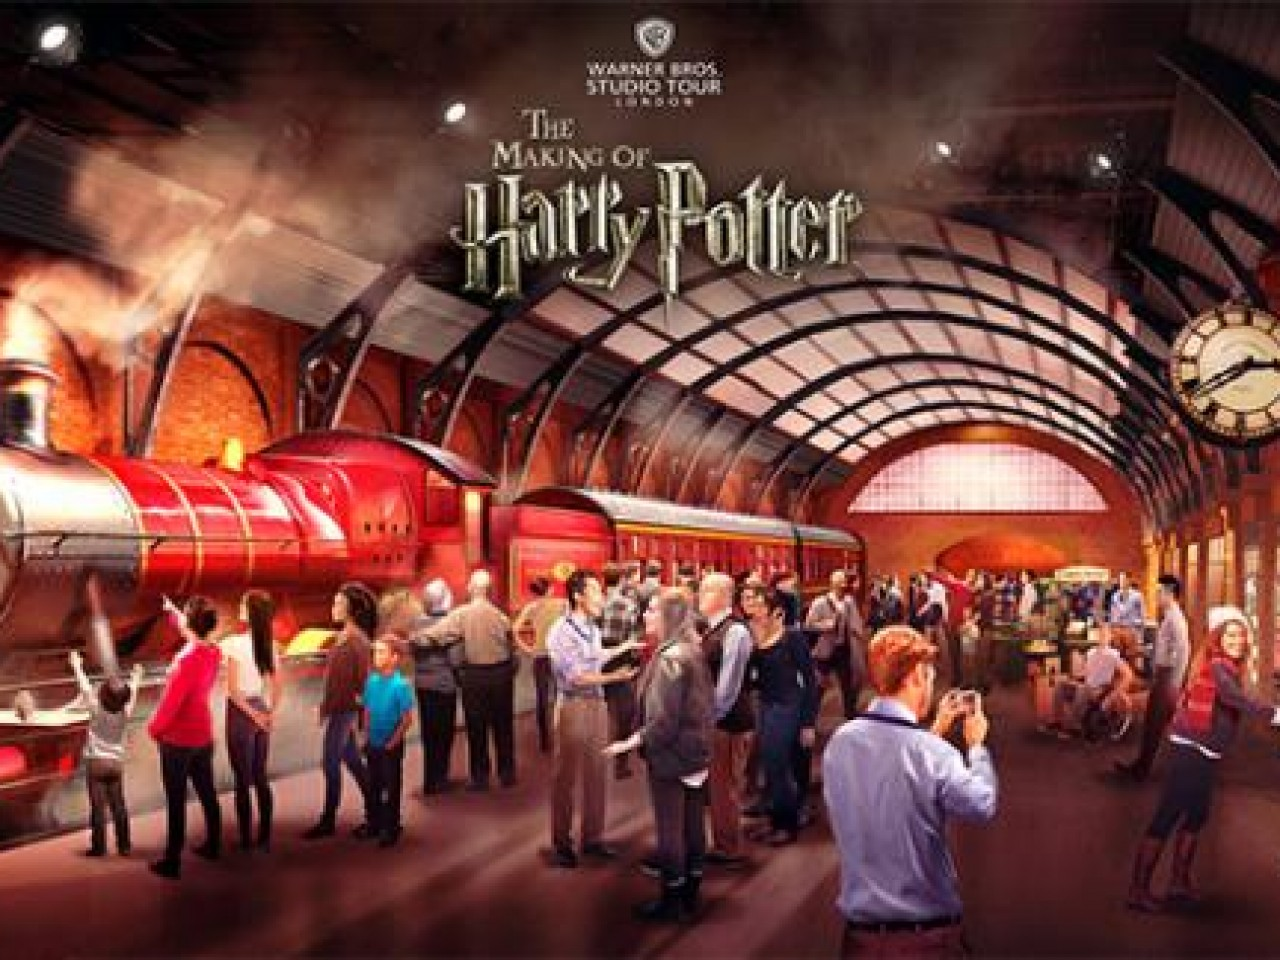 The Making of Harry Potter, A must for all Harry Potter Fans